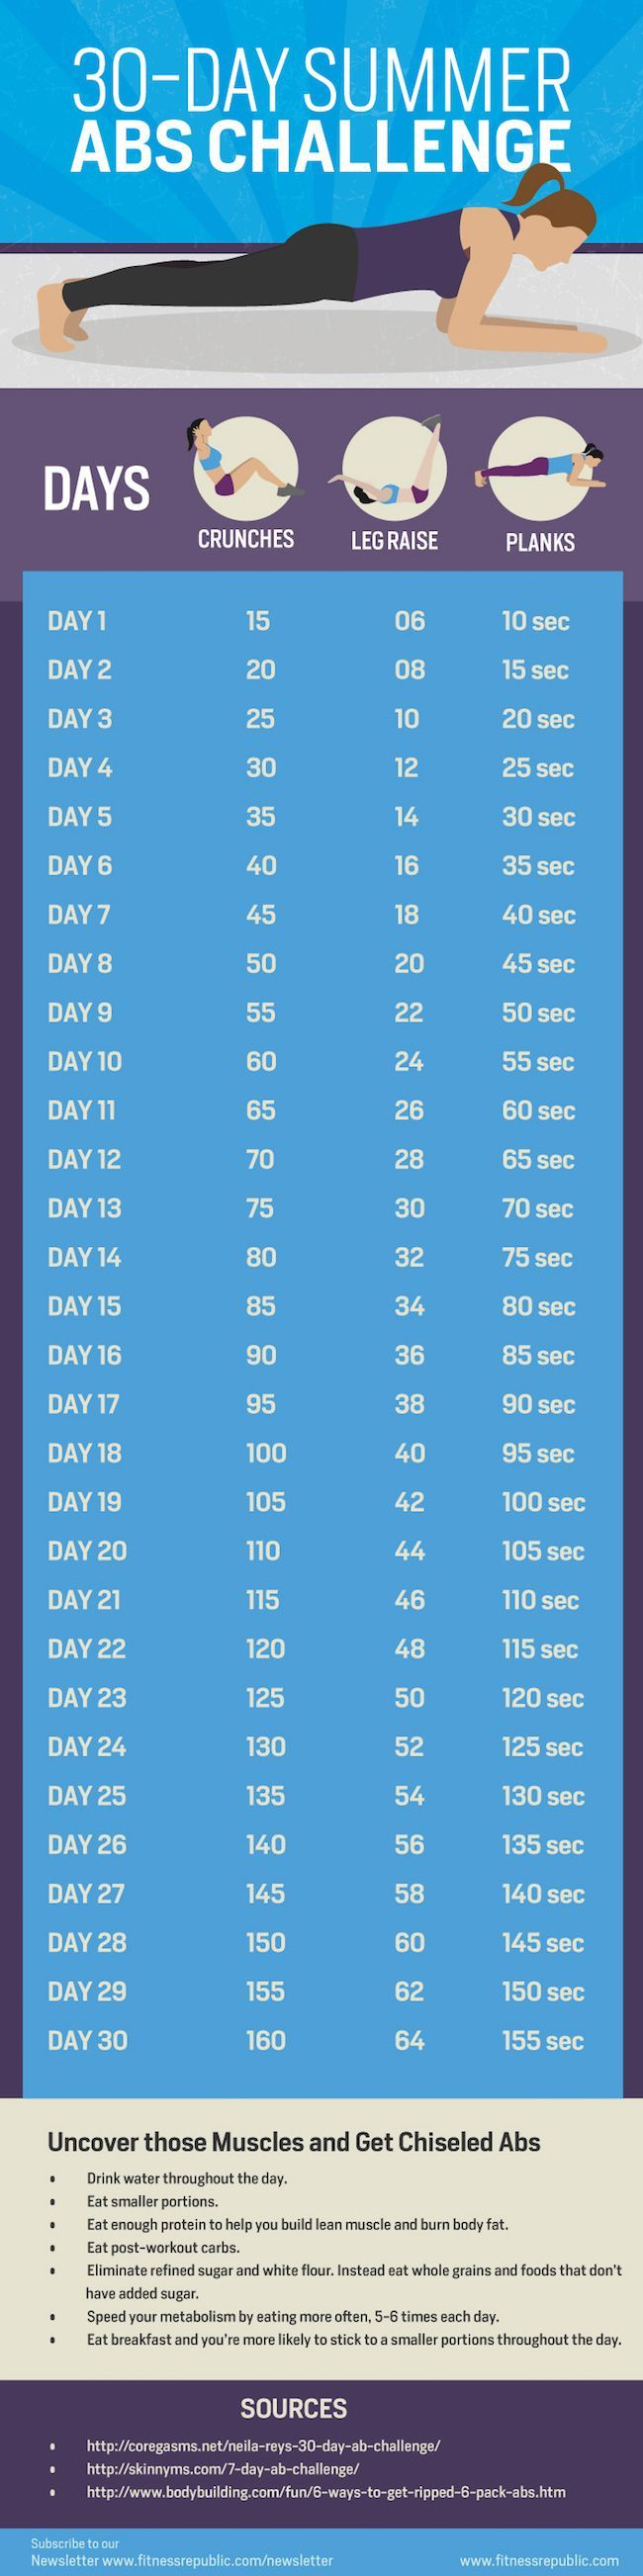 See more here ► https://www.youtube.com/watch?v=ITkJDrQsNKg Tags: how do i lose weight without exercising, lose weight in a week without exercise, how to lose weight without diet or exercise - 30 day summer abs challenge - I have got time to get my abs in